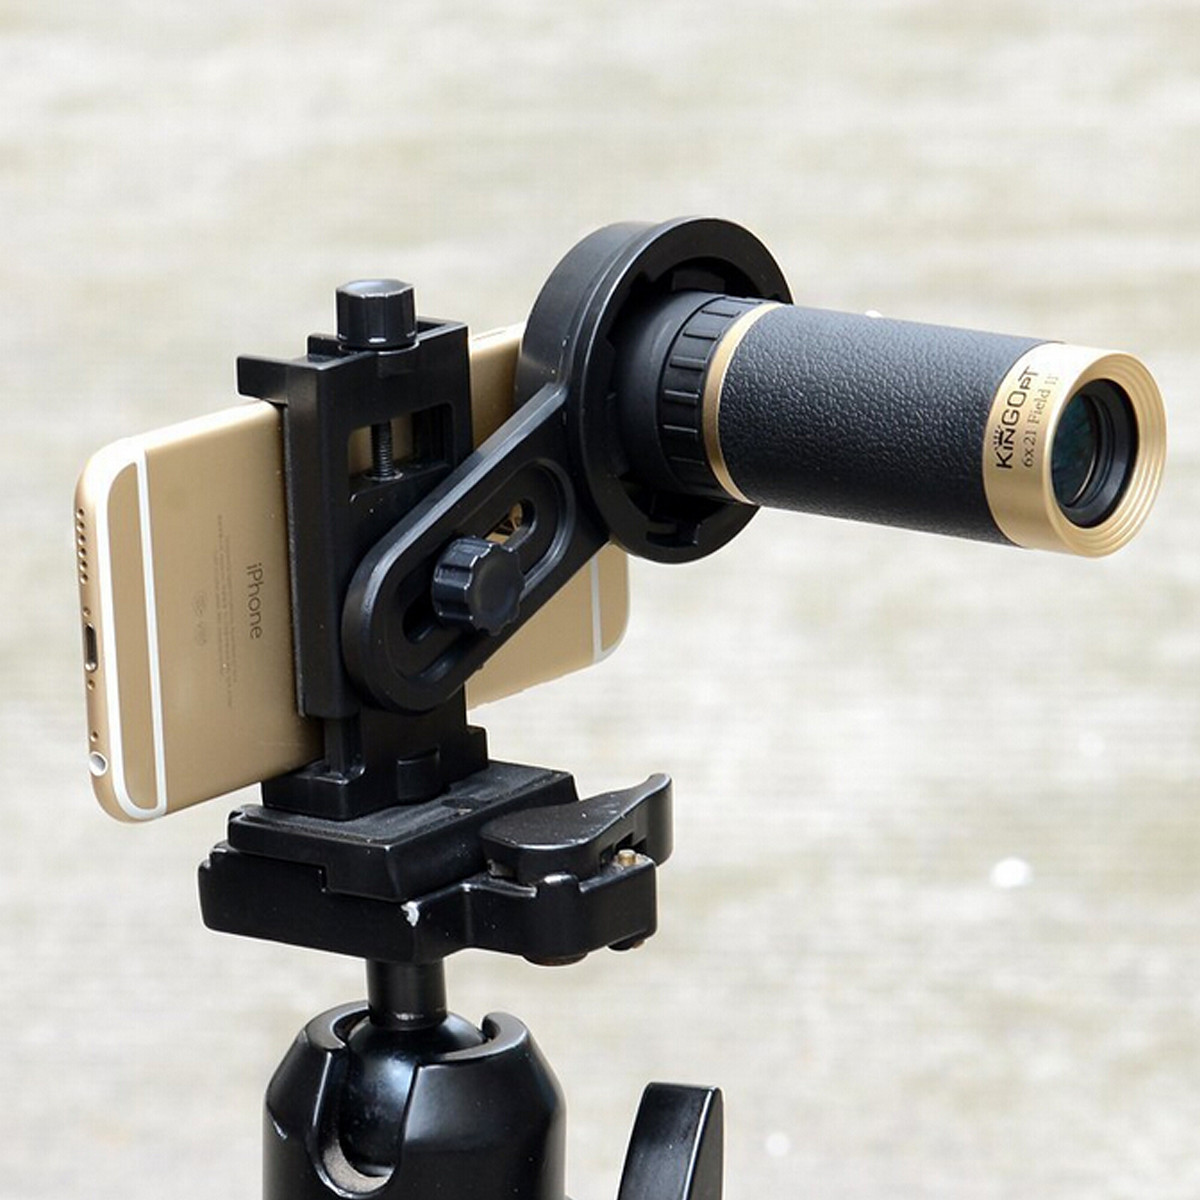 Universal Astronomical TelescopE-mount Holder Adapter Clip For Smartphone Camera